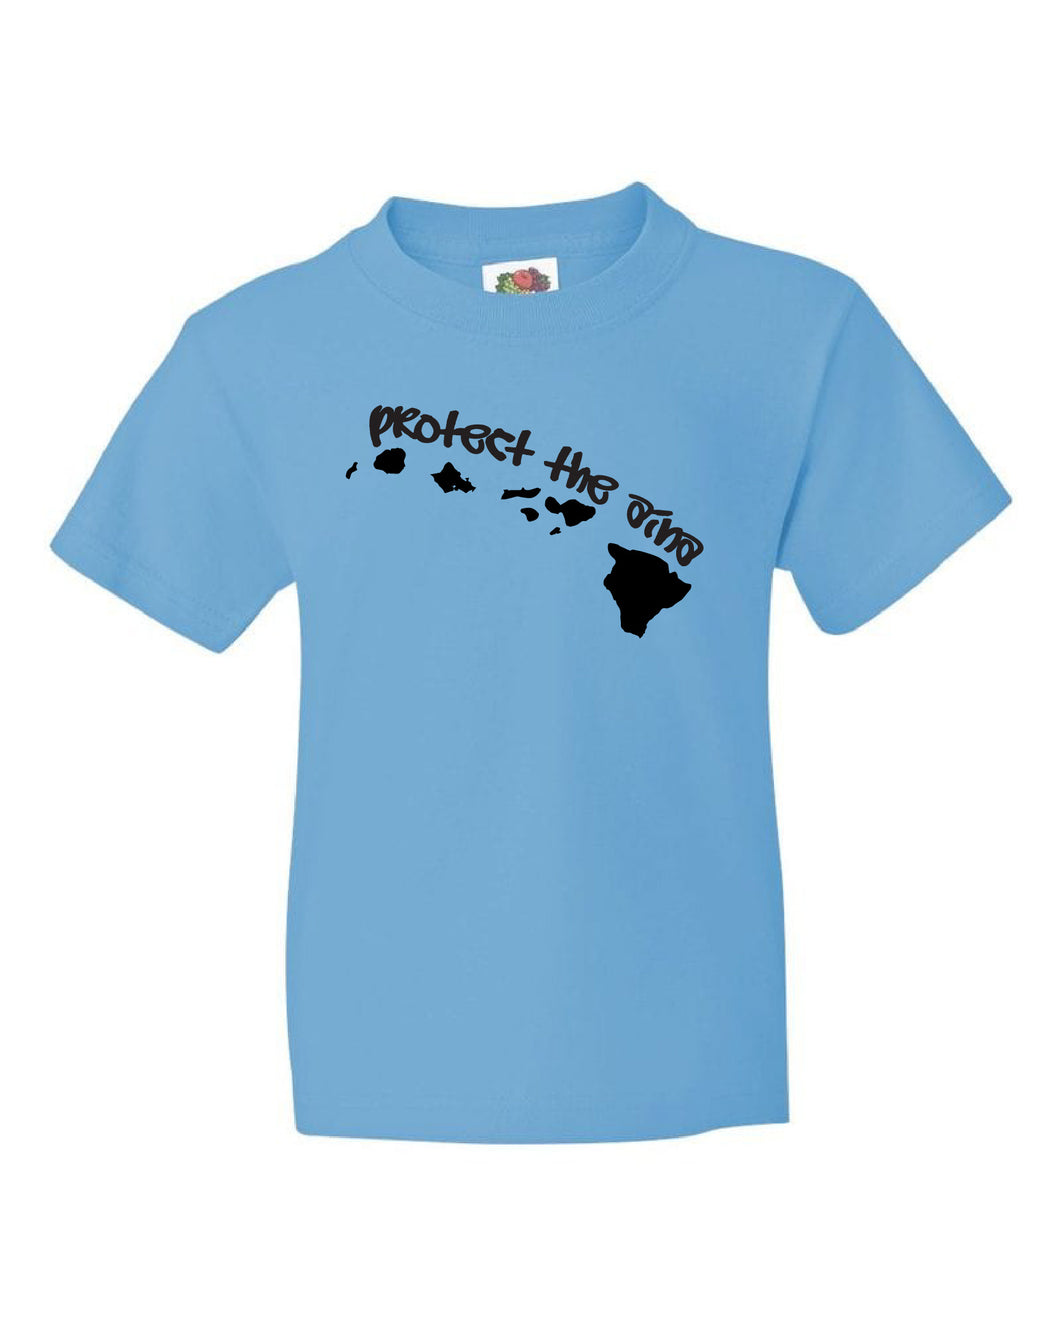 KIDS T-SHIRT - PROTECT THE AINA - BLACK ON BLUE - L